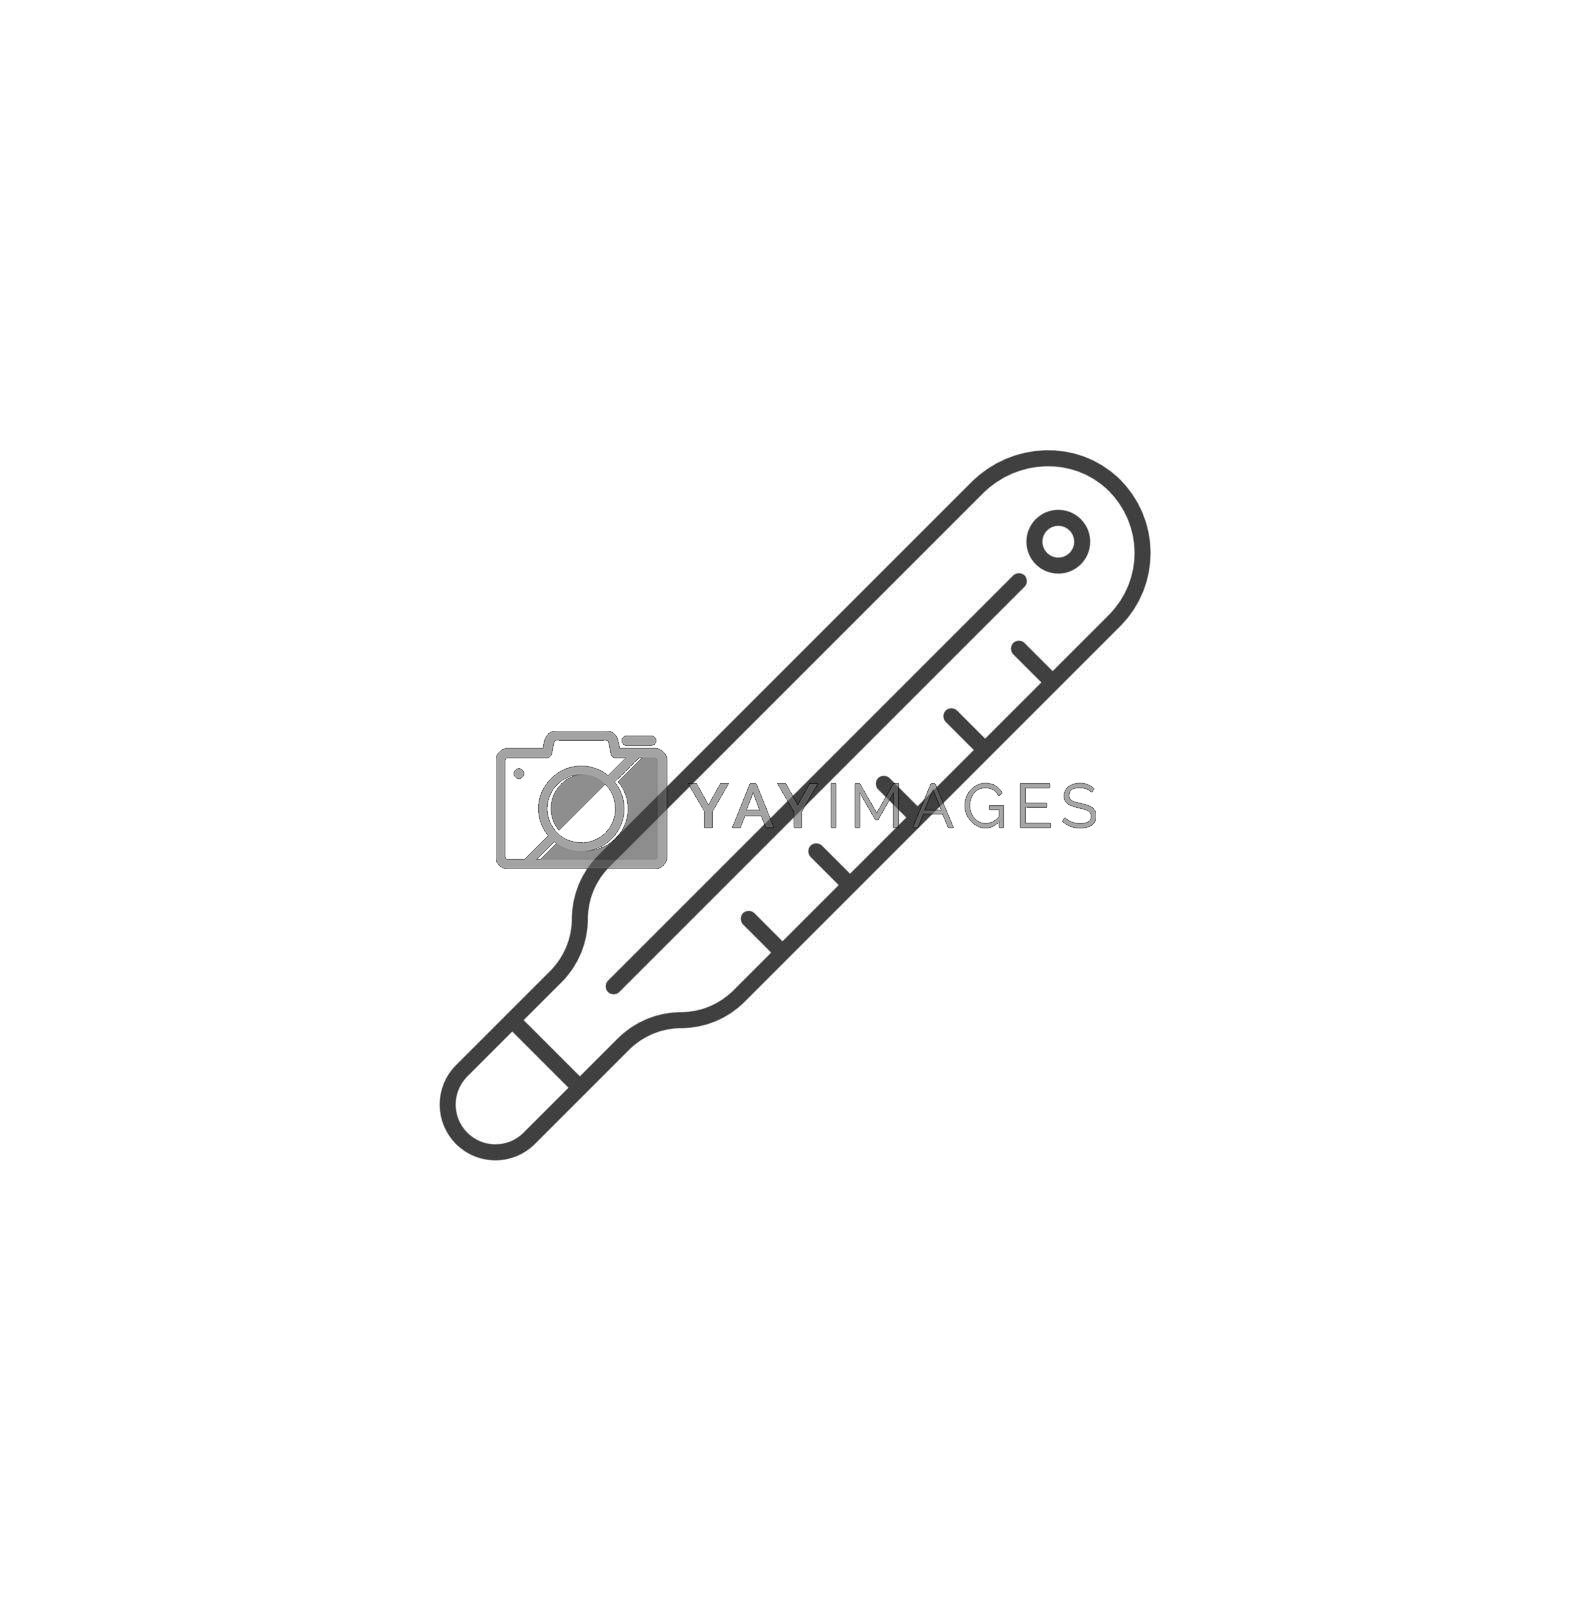 Thermometer Thin Line Related Vector Icon. Flat Icon Isolated on the Black Background. Editable Stroke EPS file. Vector illustration.